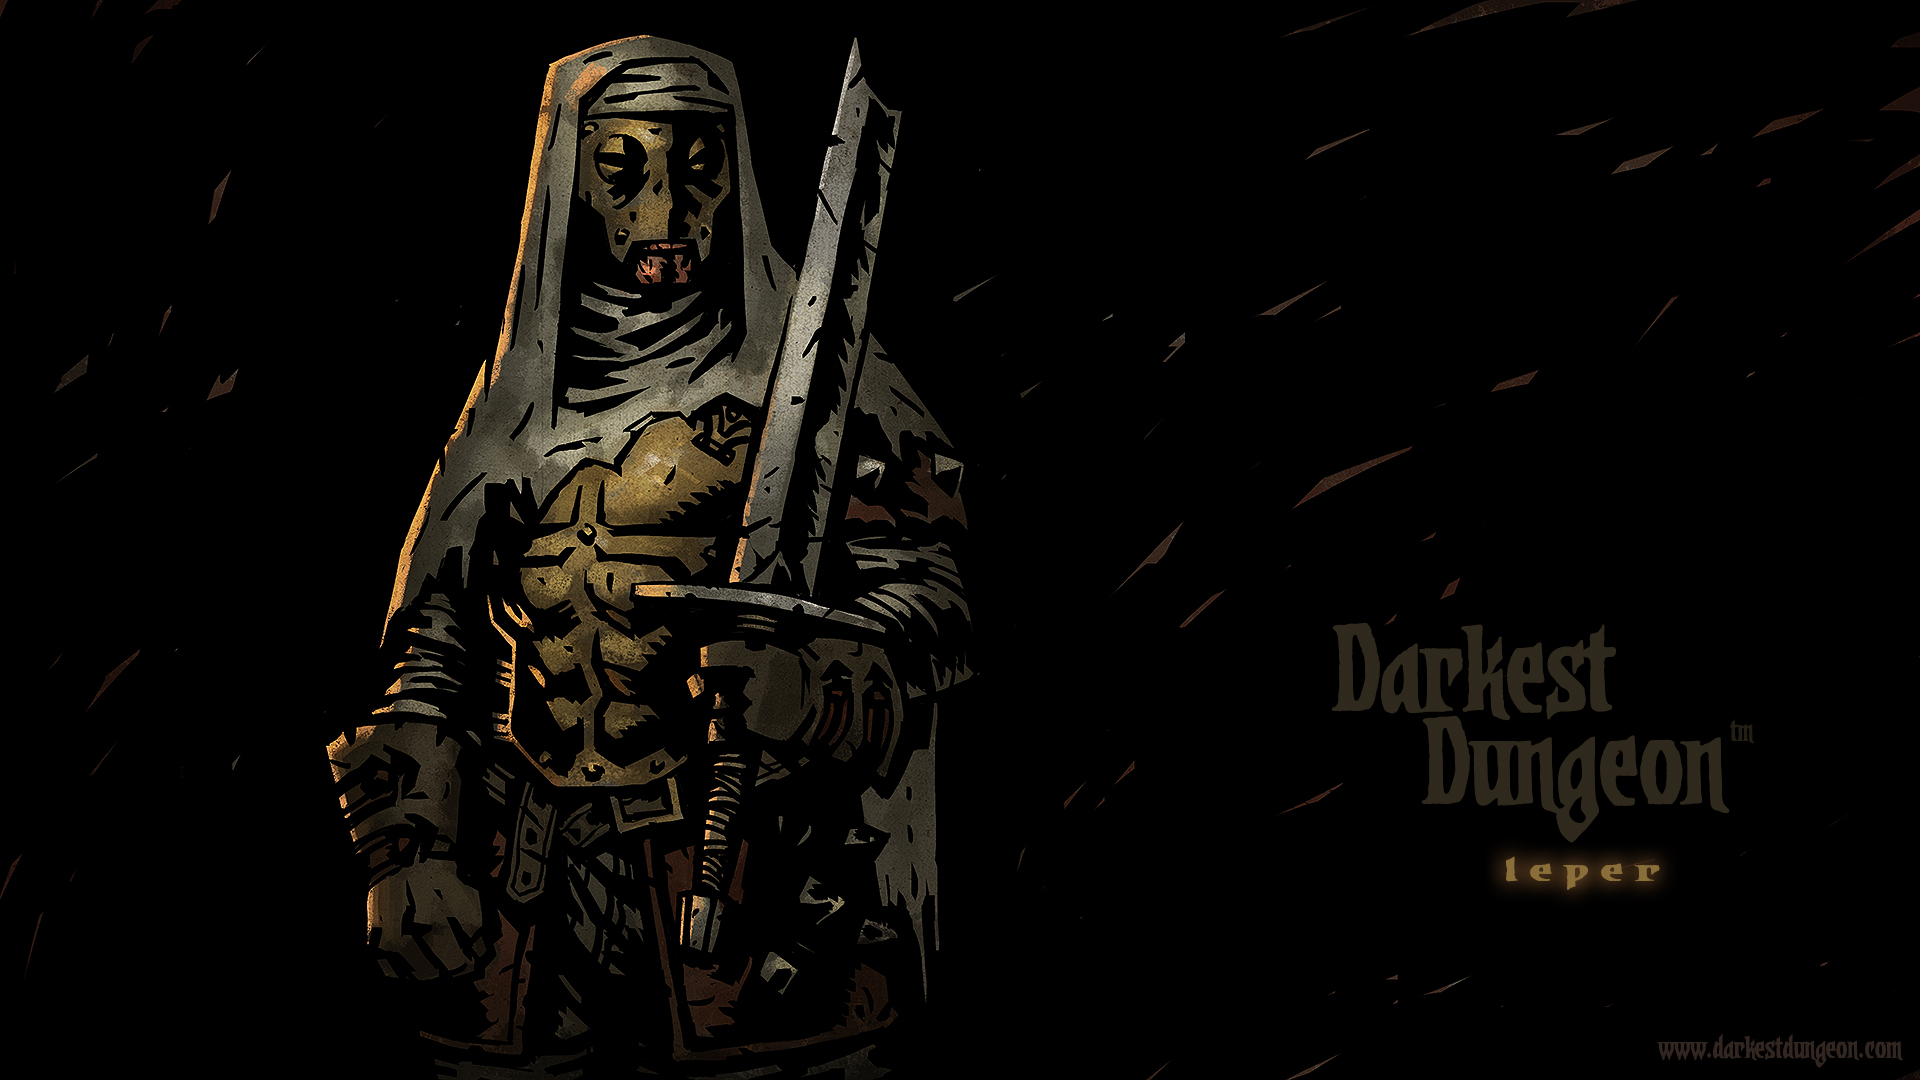 The Leper character wallpaper.